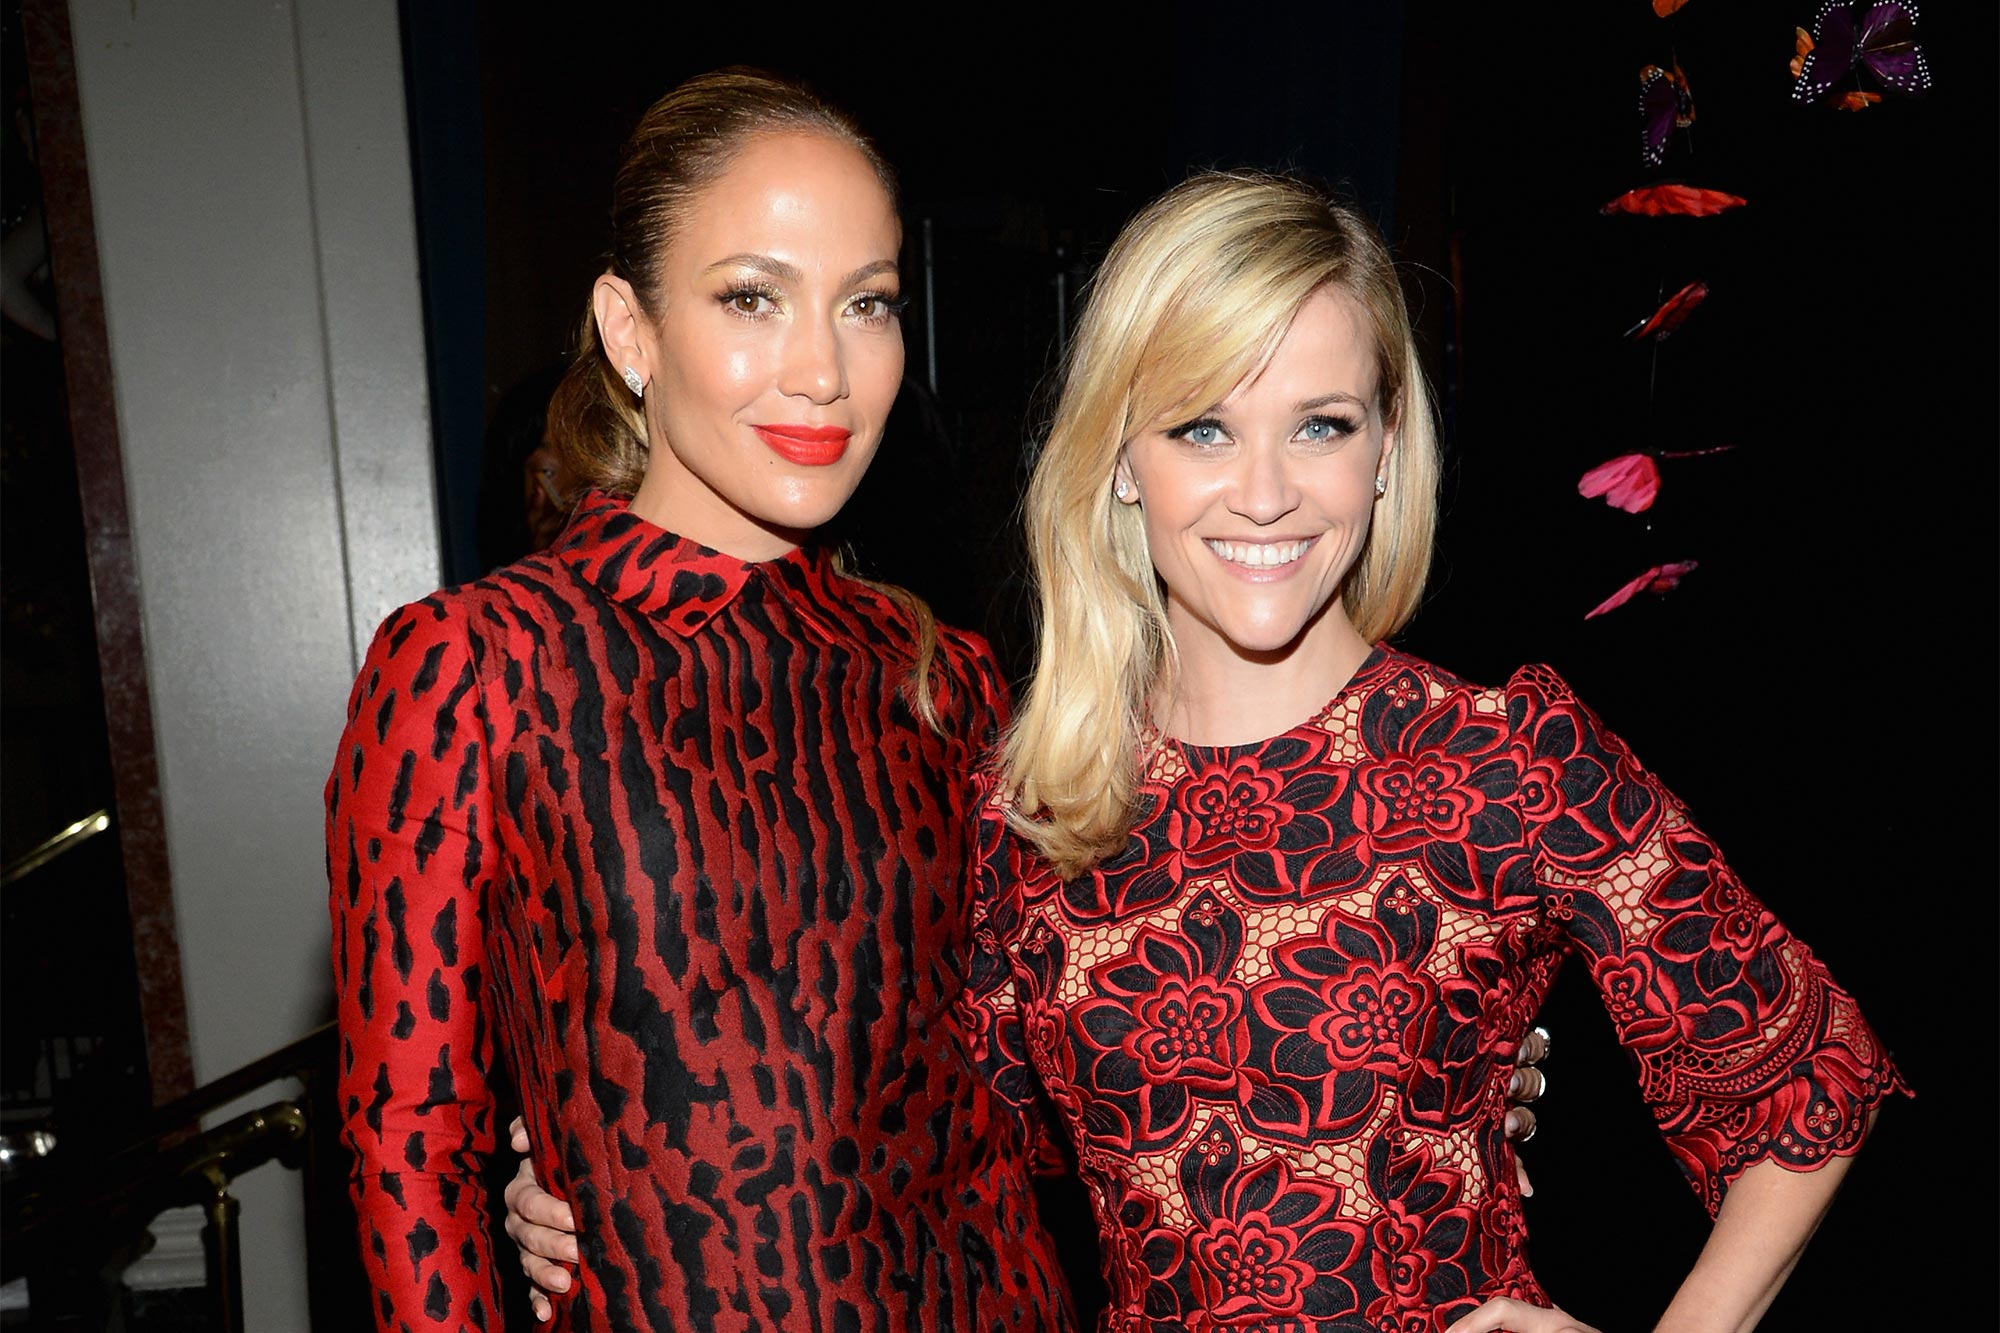 Jennifer Lopez and Reese Witherspoon